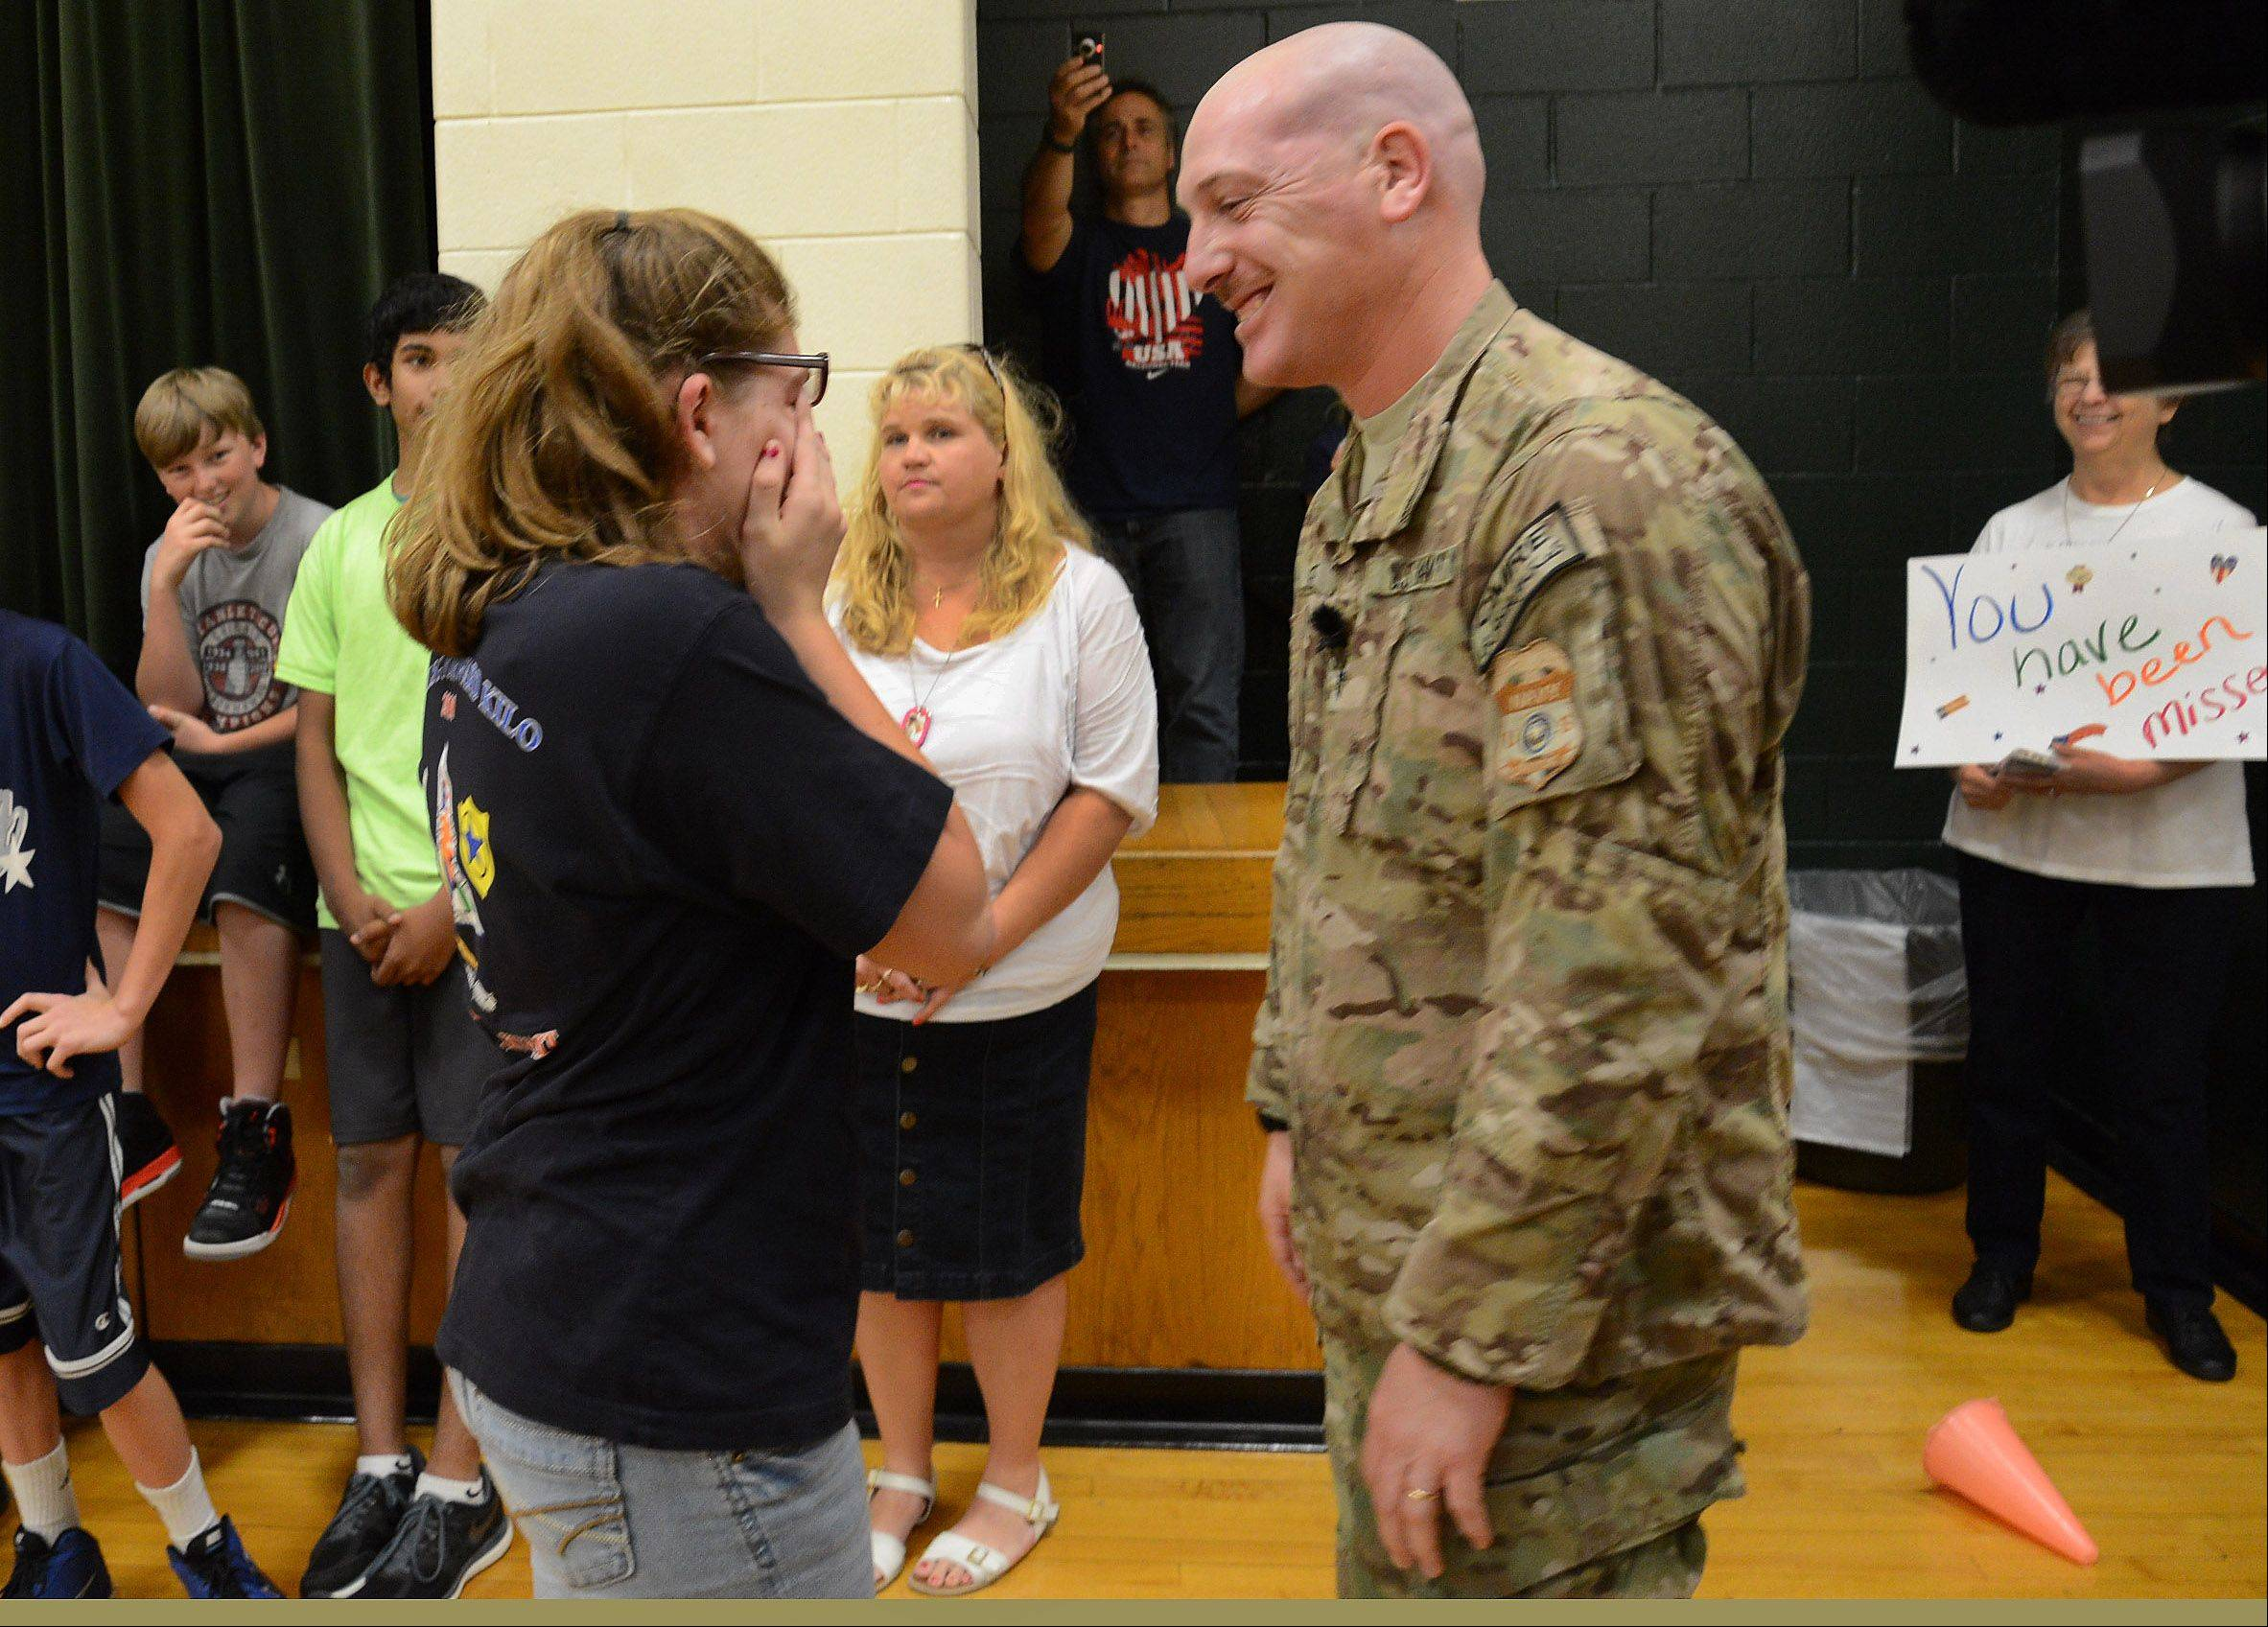 Navy Chief Gunner's Mate Patrick Fissette surprises his daughter, Kailey, at Mead Junior High School in Elk Grove Village Friday after returning from his last overseas tour of duty.